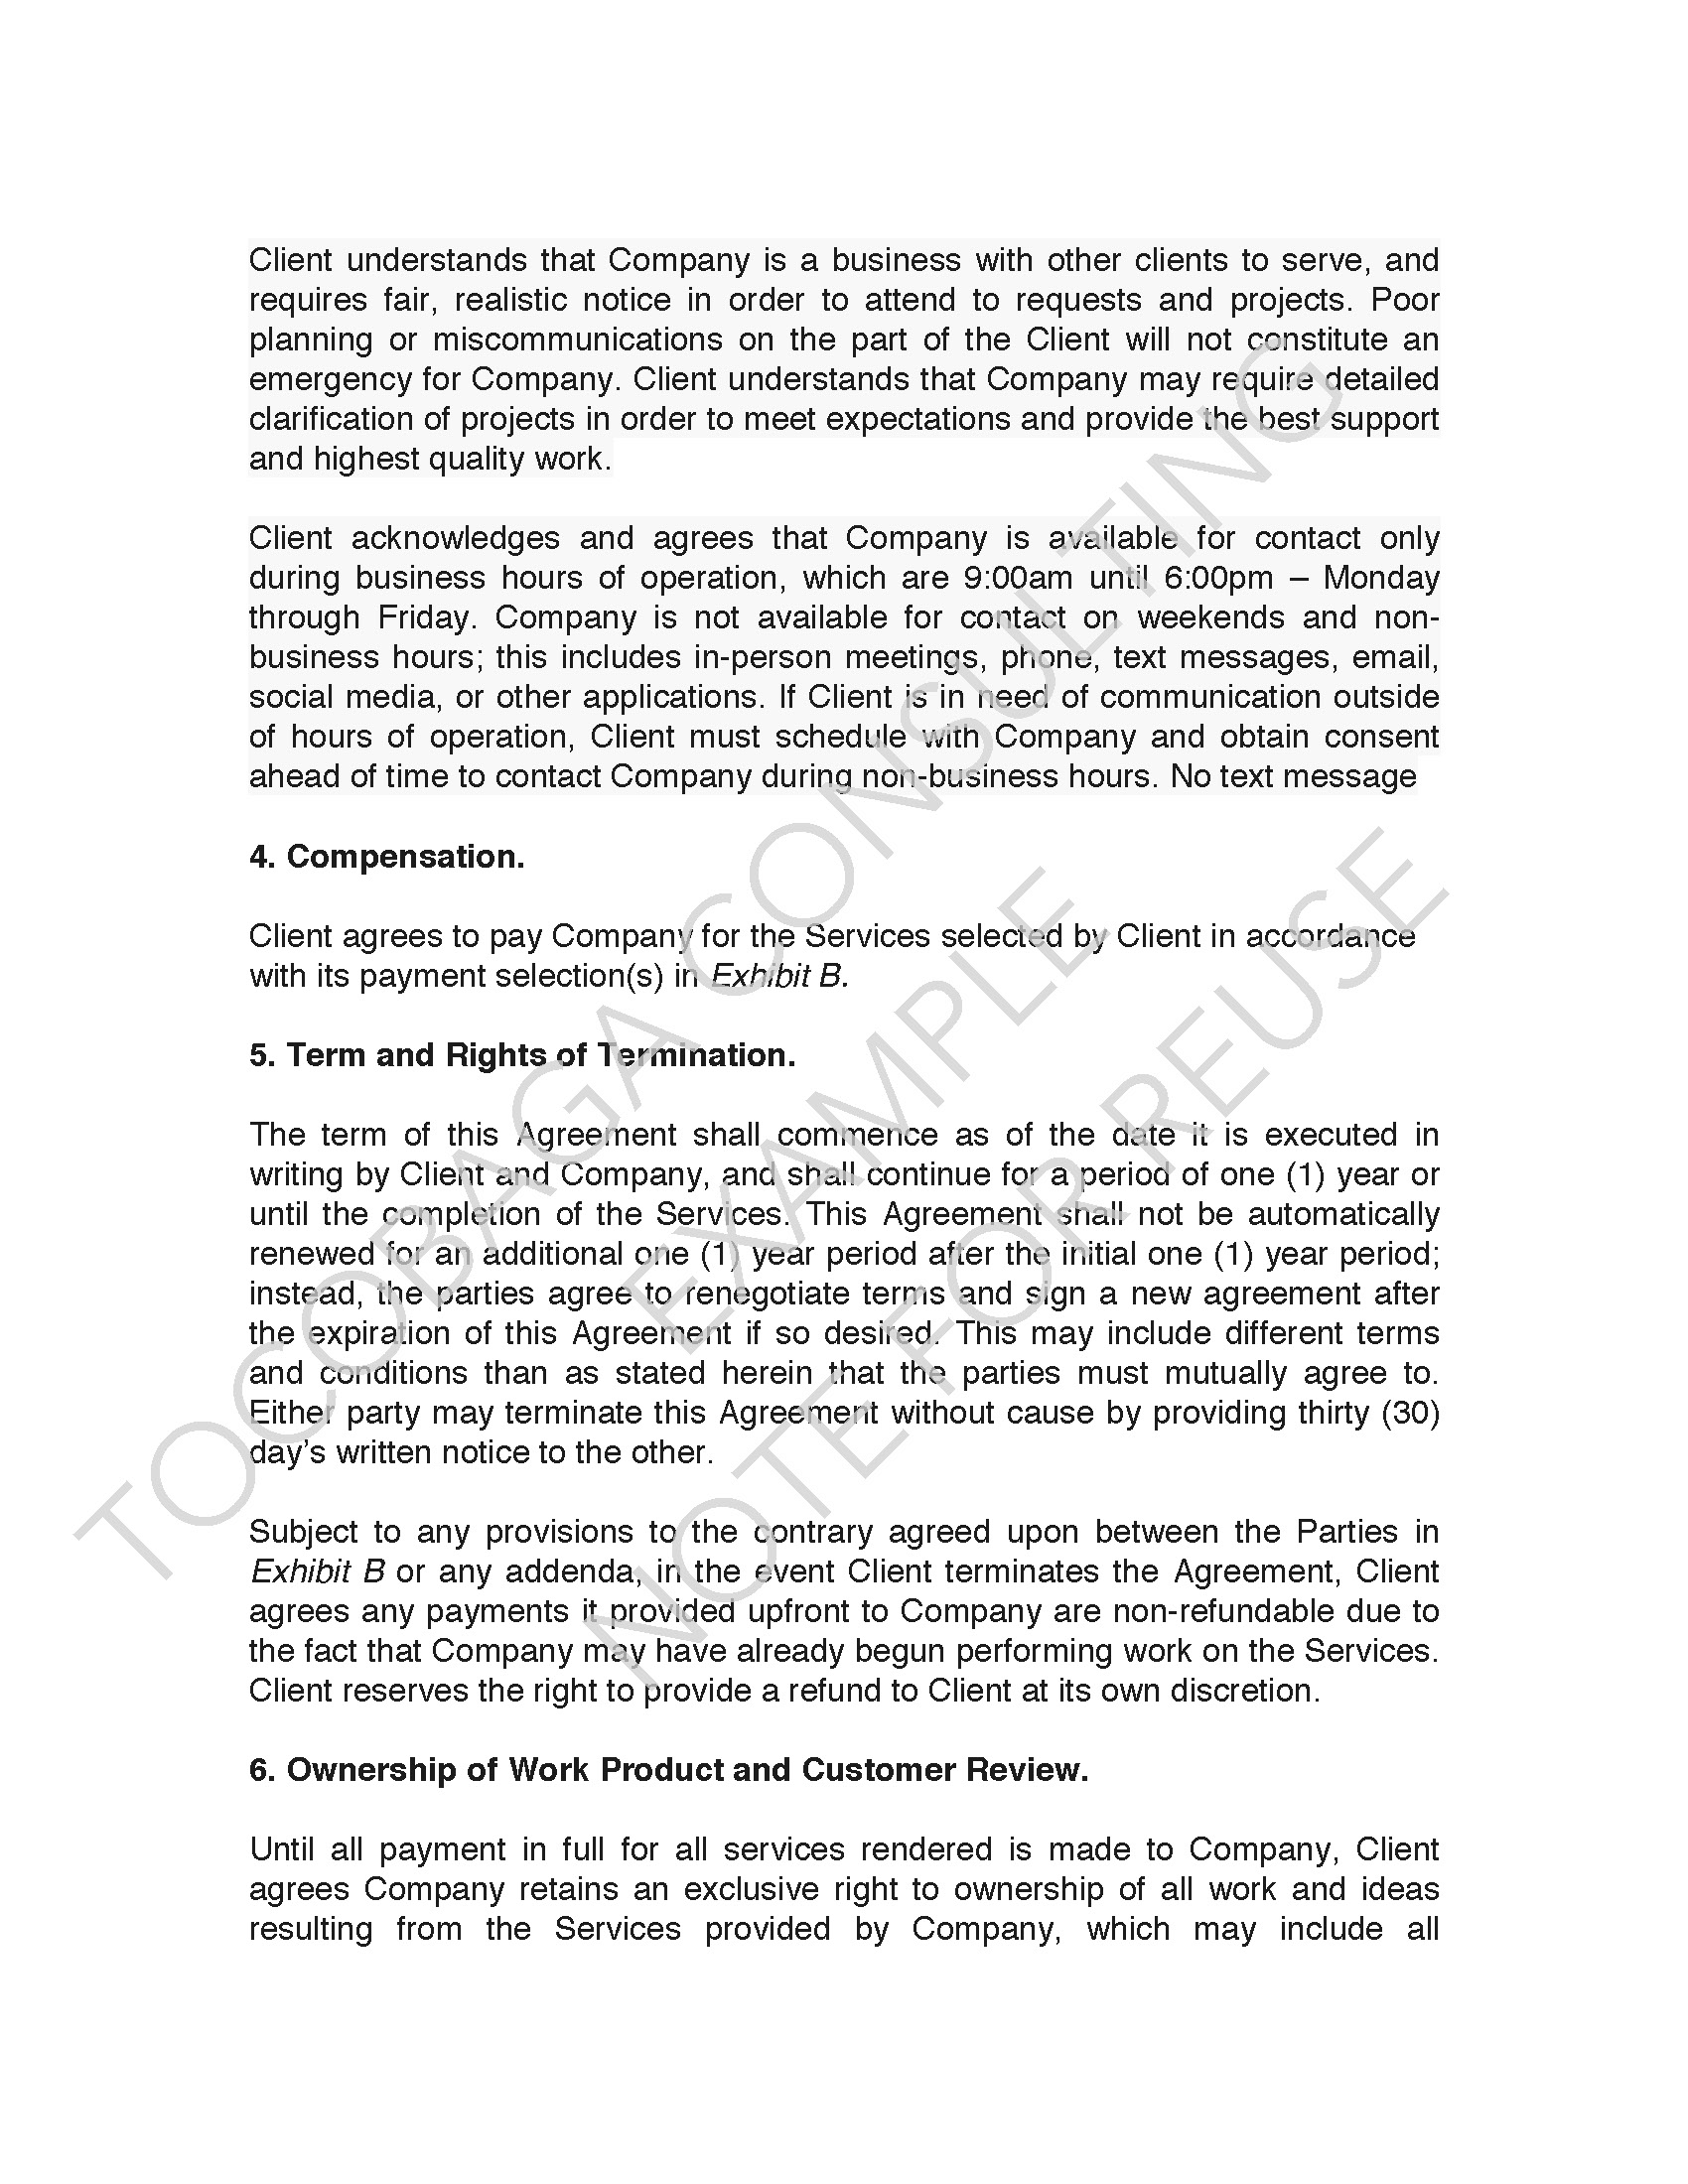 Company Services Agreement EXAMPLE_Page_03.jpg